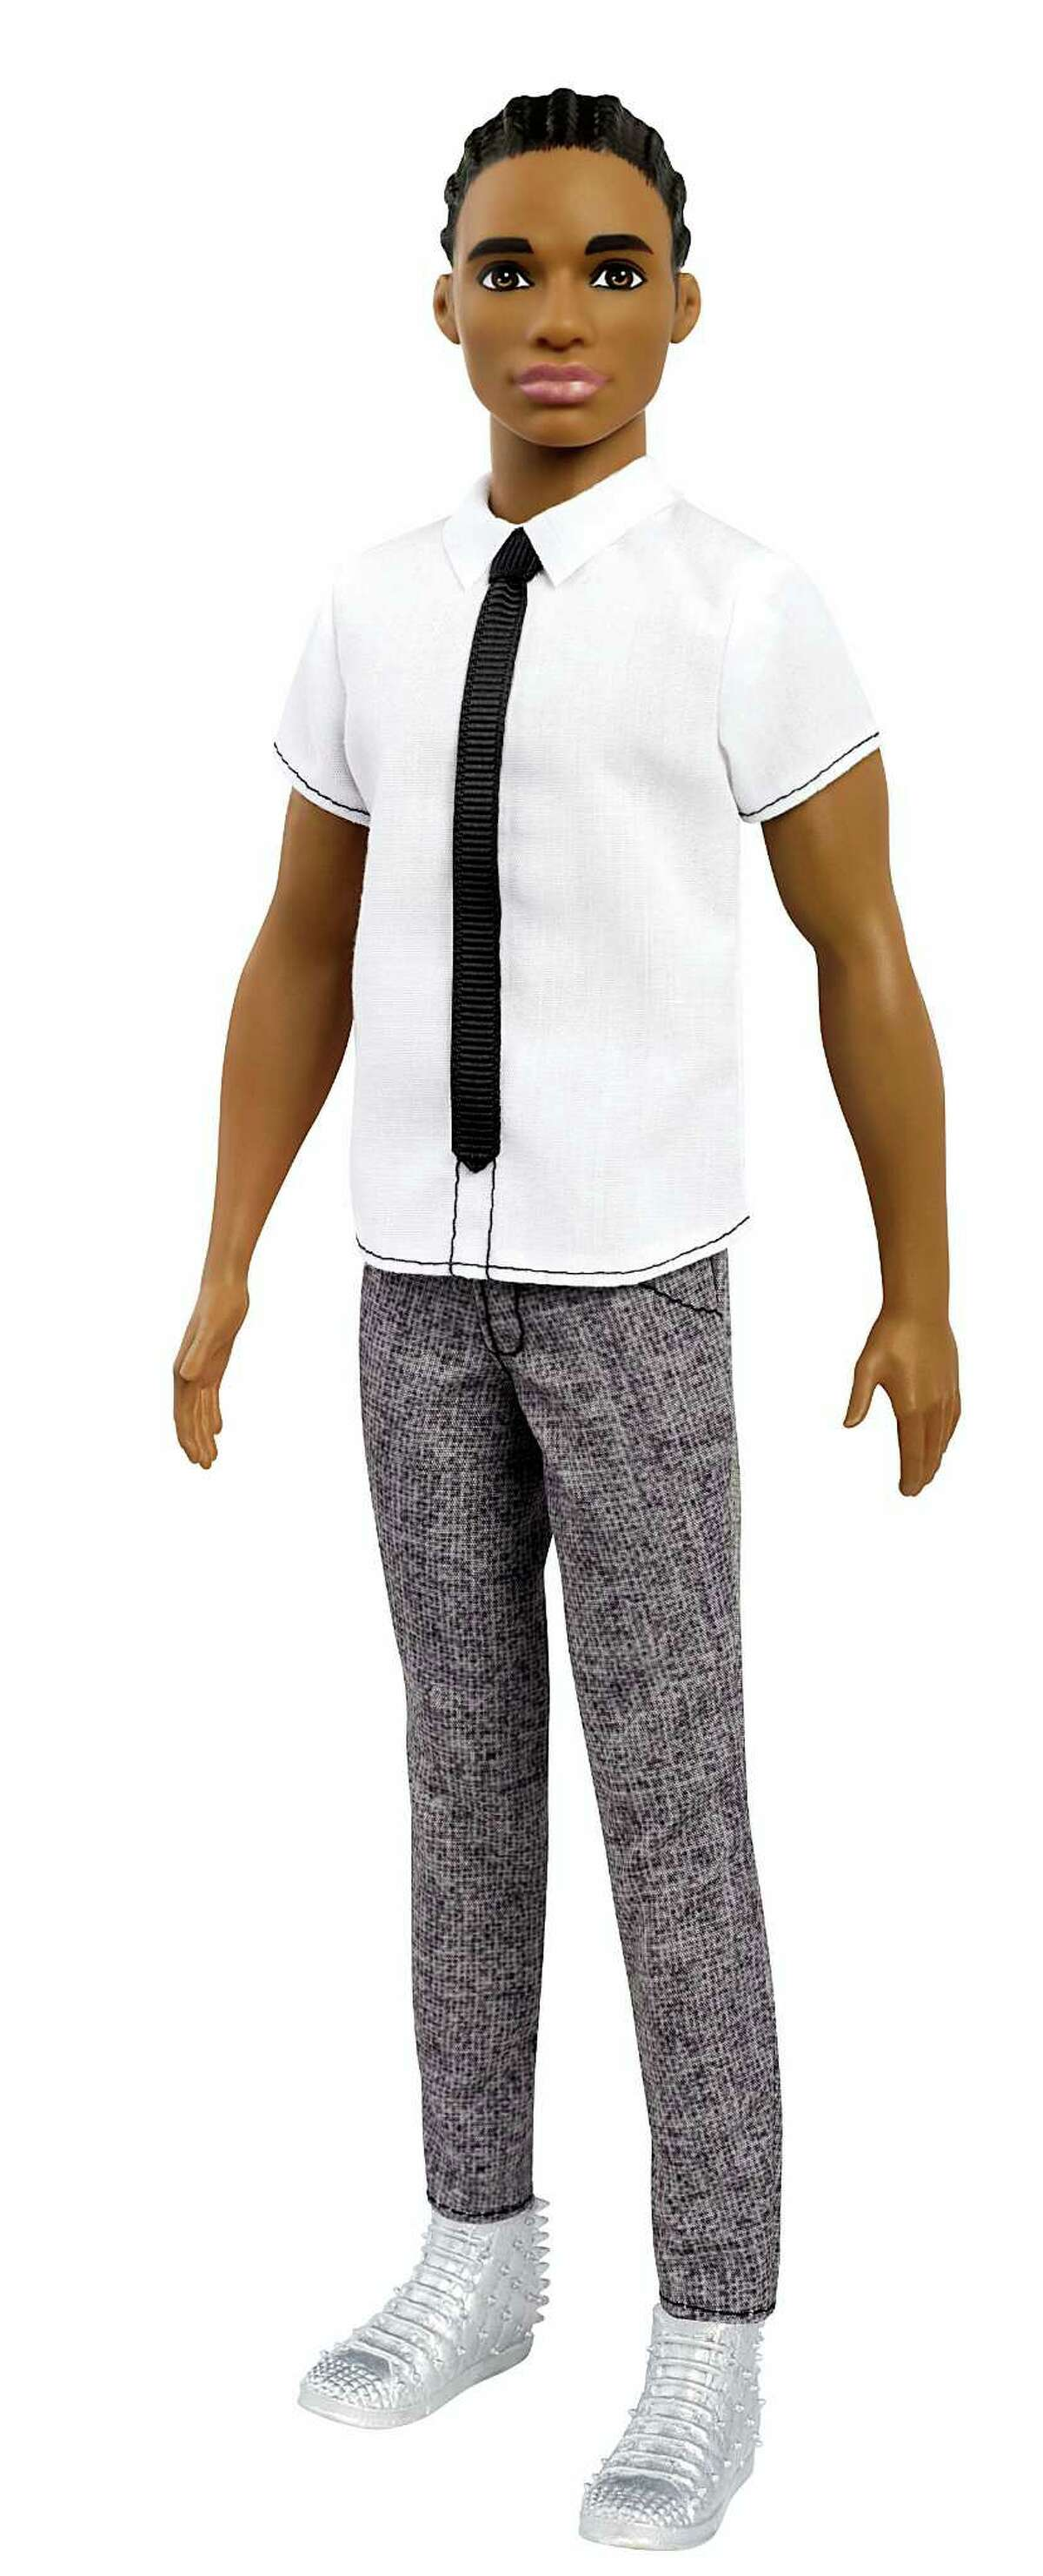 This photo provided by Mattel shows an African-American, original-style Ken doll, with cornrows. Mattel announced Tuesday, June 20, 2017, that the company is introducing 15 new looks for the male doll, giving him new skin tones, body shapes and hair styles. The makeover is part of the toy company's plan to make its dolls more diverse and try to appeal to today's kids, many of whom would rather pick up an iPad than a doll. Barbie received a similar overhaul more than a year earlier. (Courtesy of Mattel via AP)